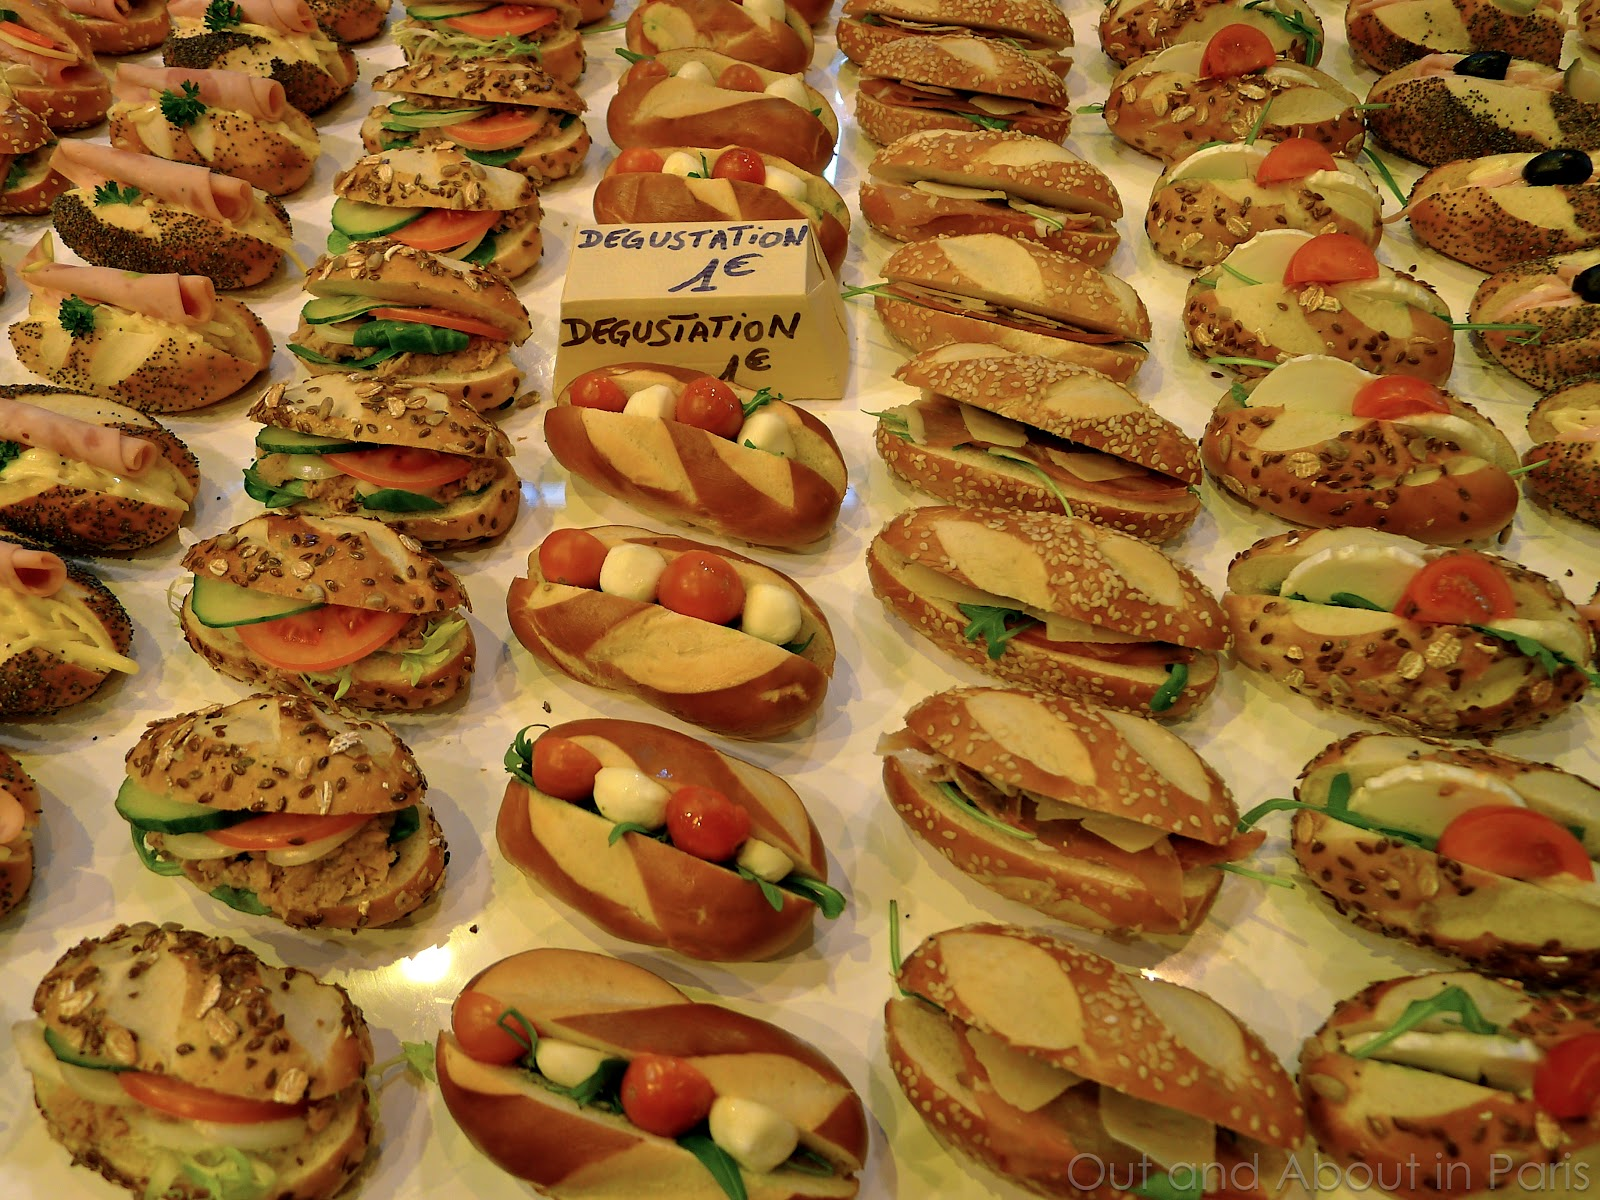 Sandwich And Snack Show In Paris The Latest Trends In